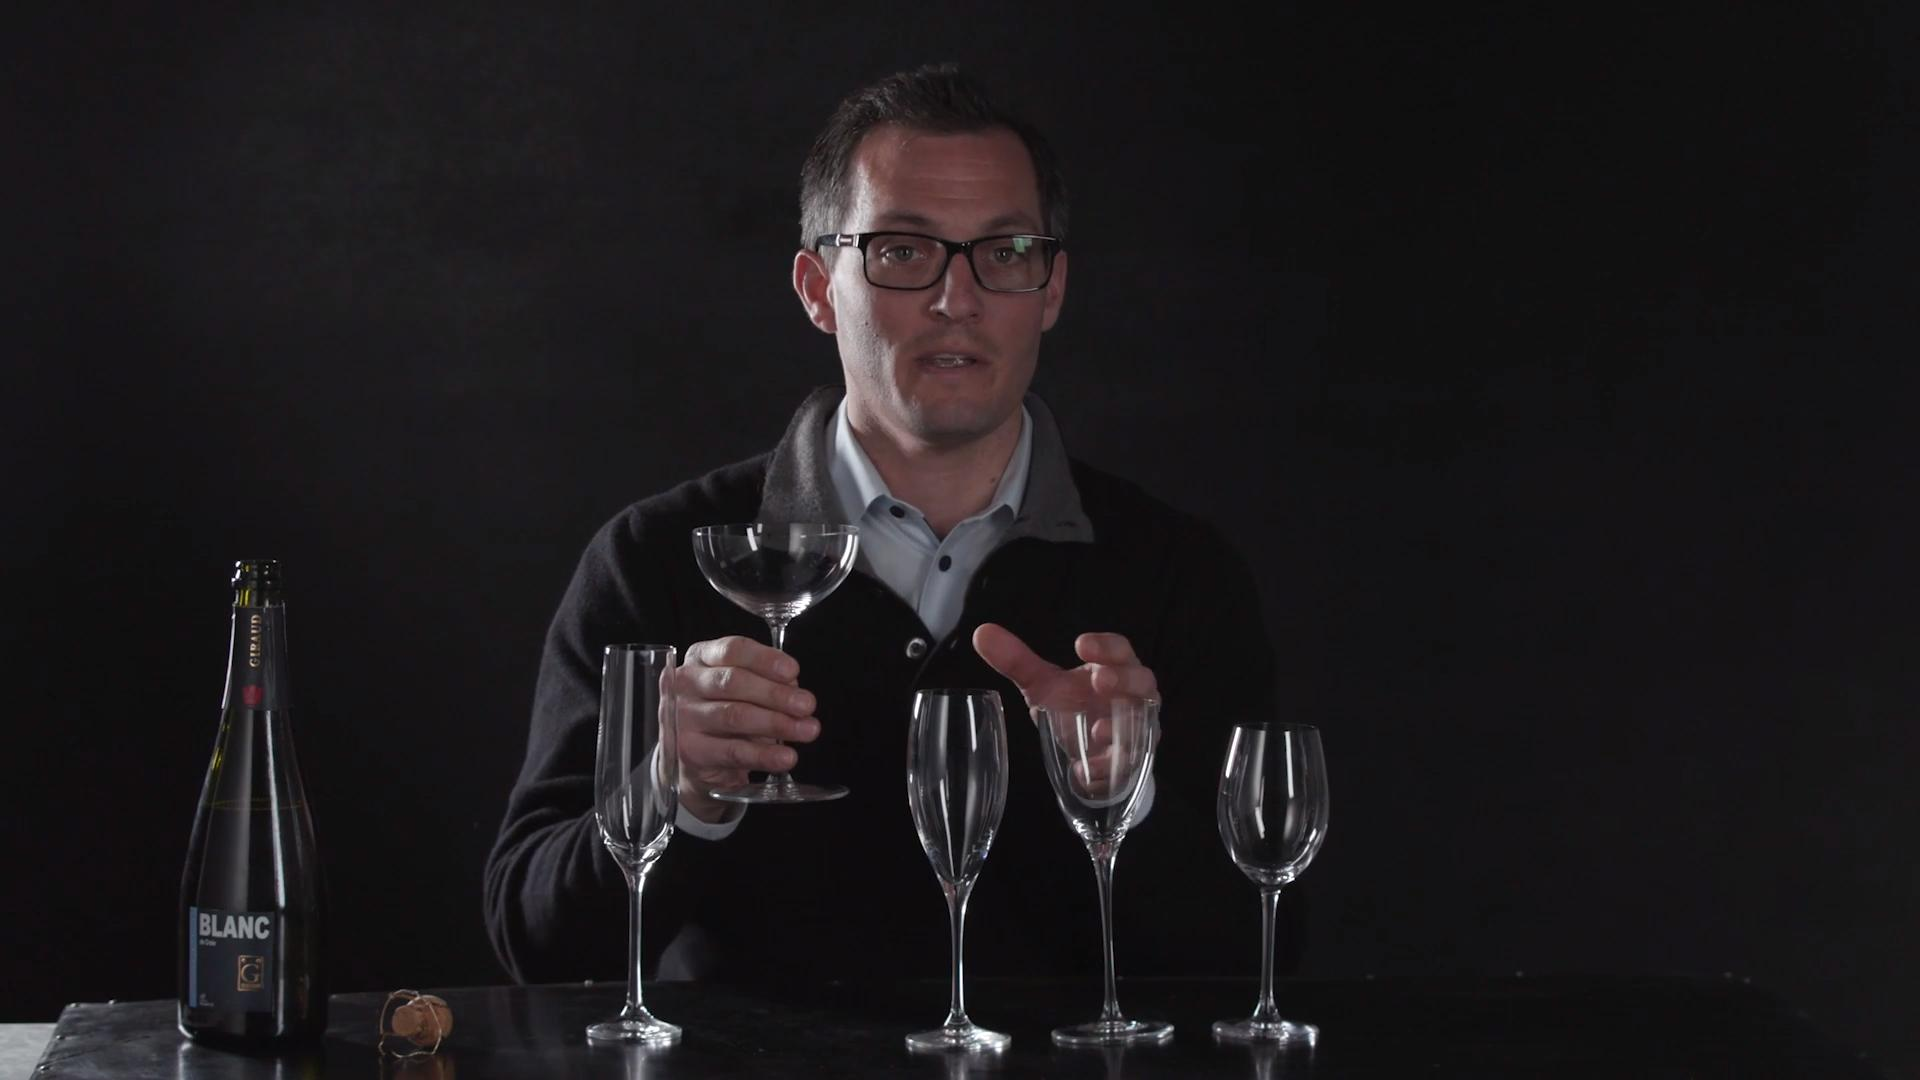 Andy Chabot on Champagne